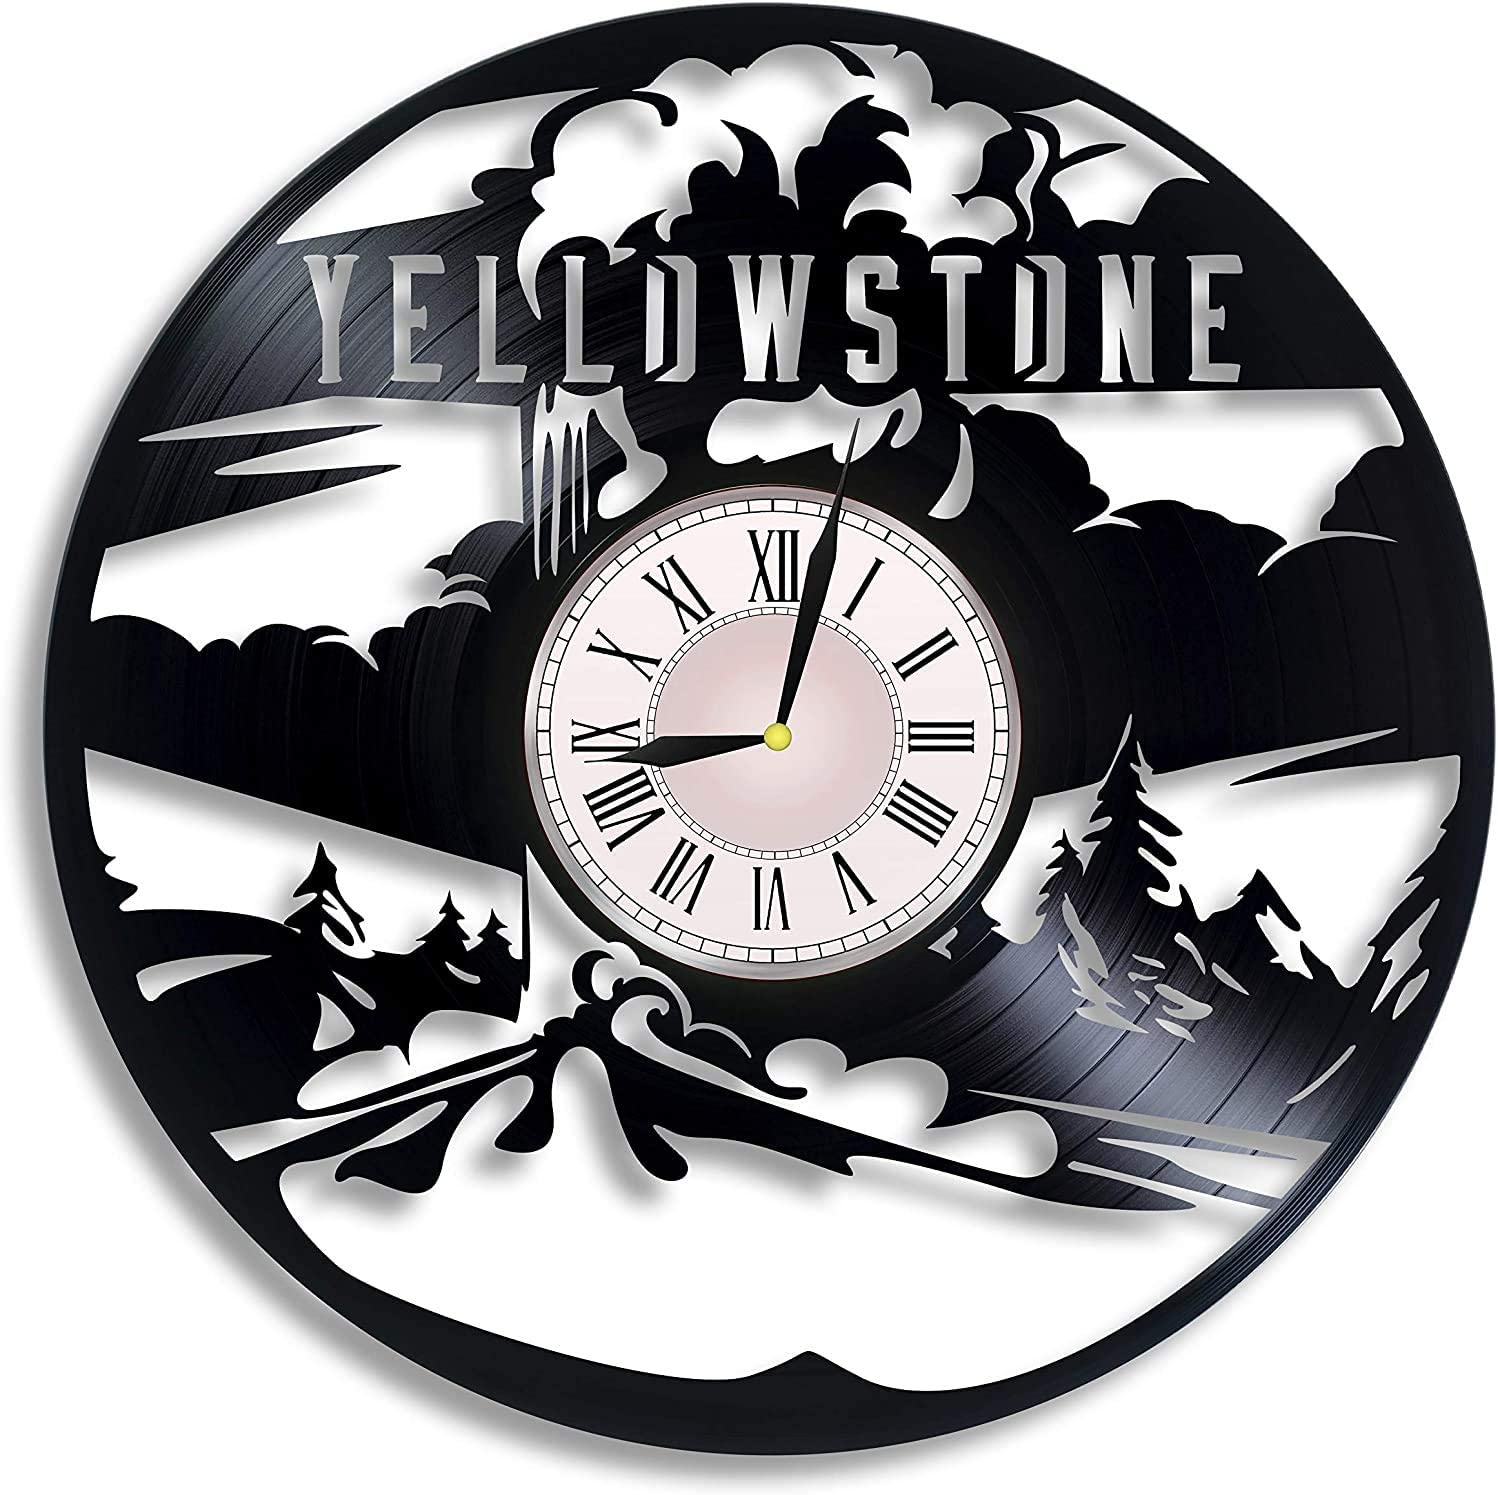 Vinyl Record Wall Clock Compatible with Yellowstone Home Decor - Bedroom Wall Clock Yellowstone Wall Art Decoration Gifts for Adults